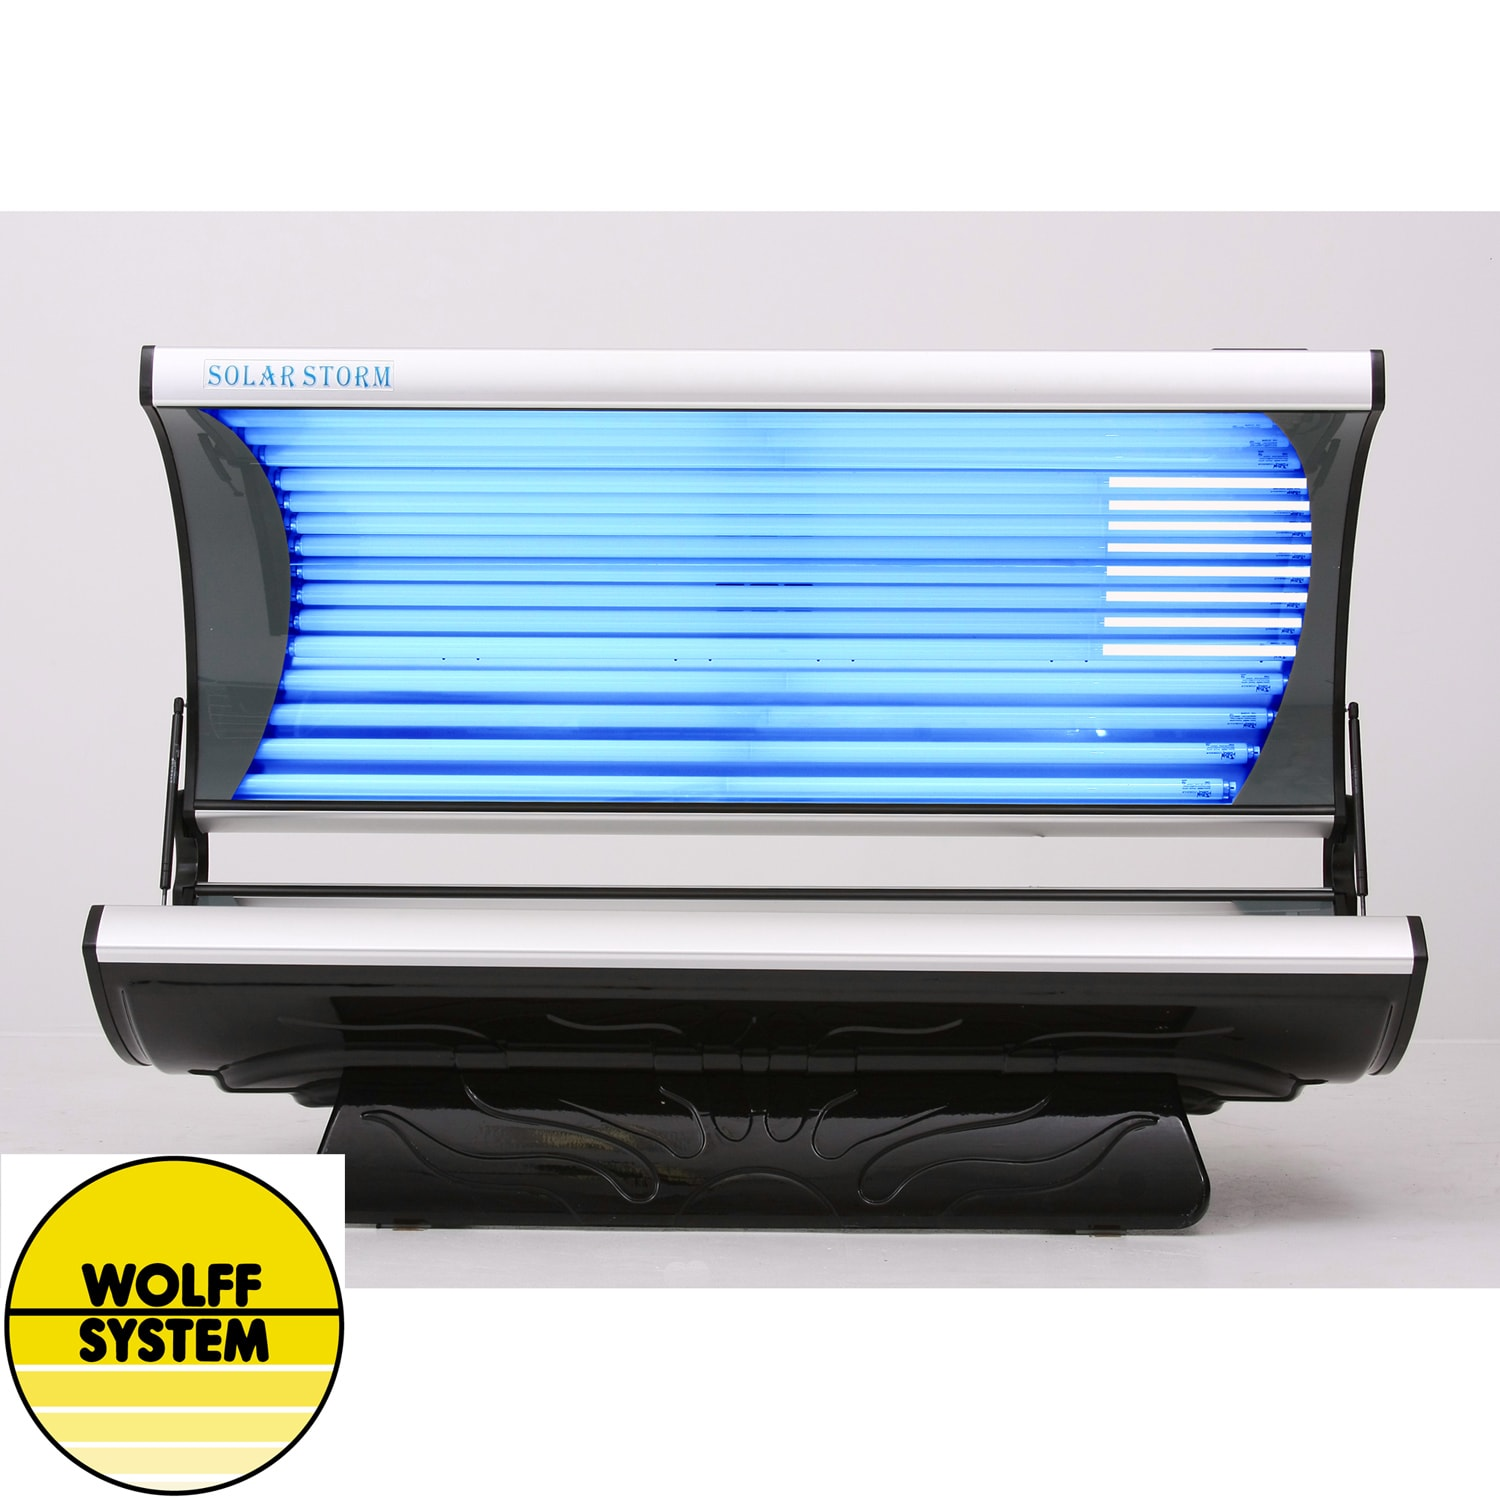 wolff systems solar storm 220v 24 lamp tanning bed overstock. Black Bedroom Furniture Sets. Home Design Ideas